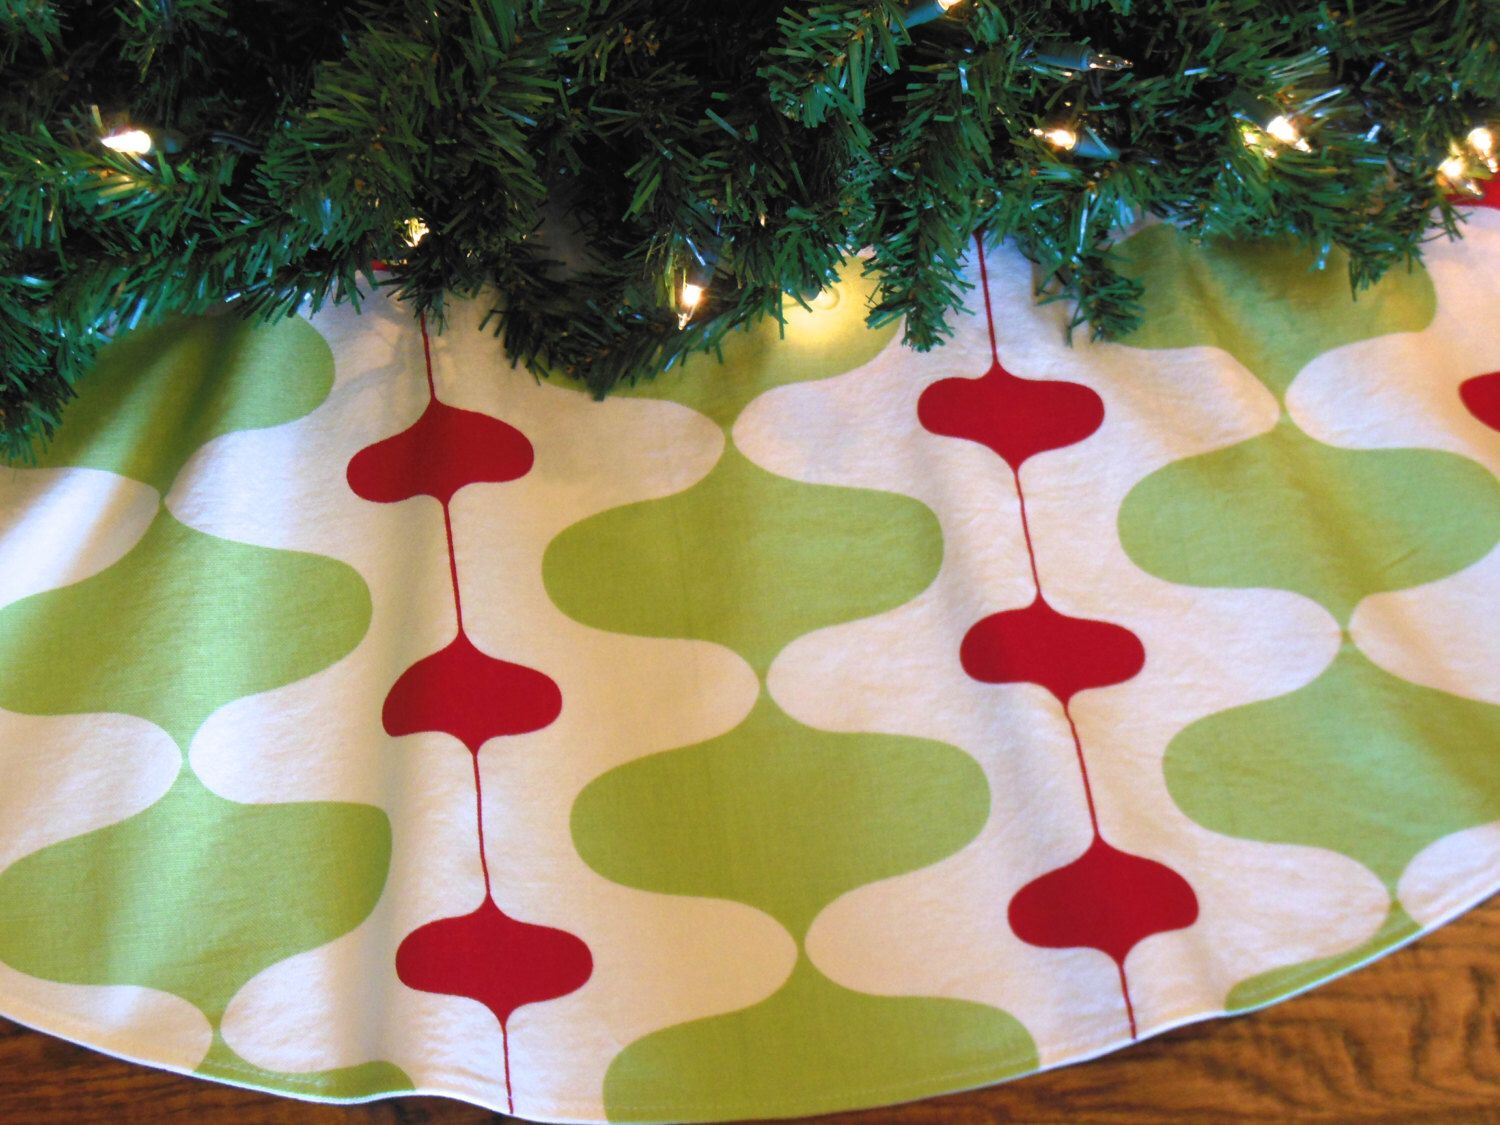 Mid Century Modern Christmas Tree Skirt Retro Mod Tree Skirt Contemporary Tree Skirt Red And Green Christmas Decor 48 Xmas Tree Skirt By